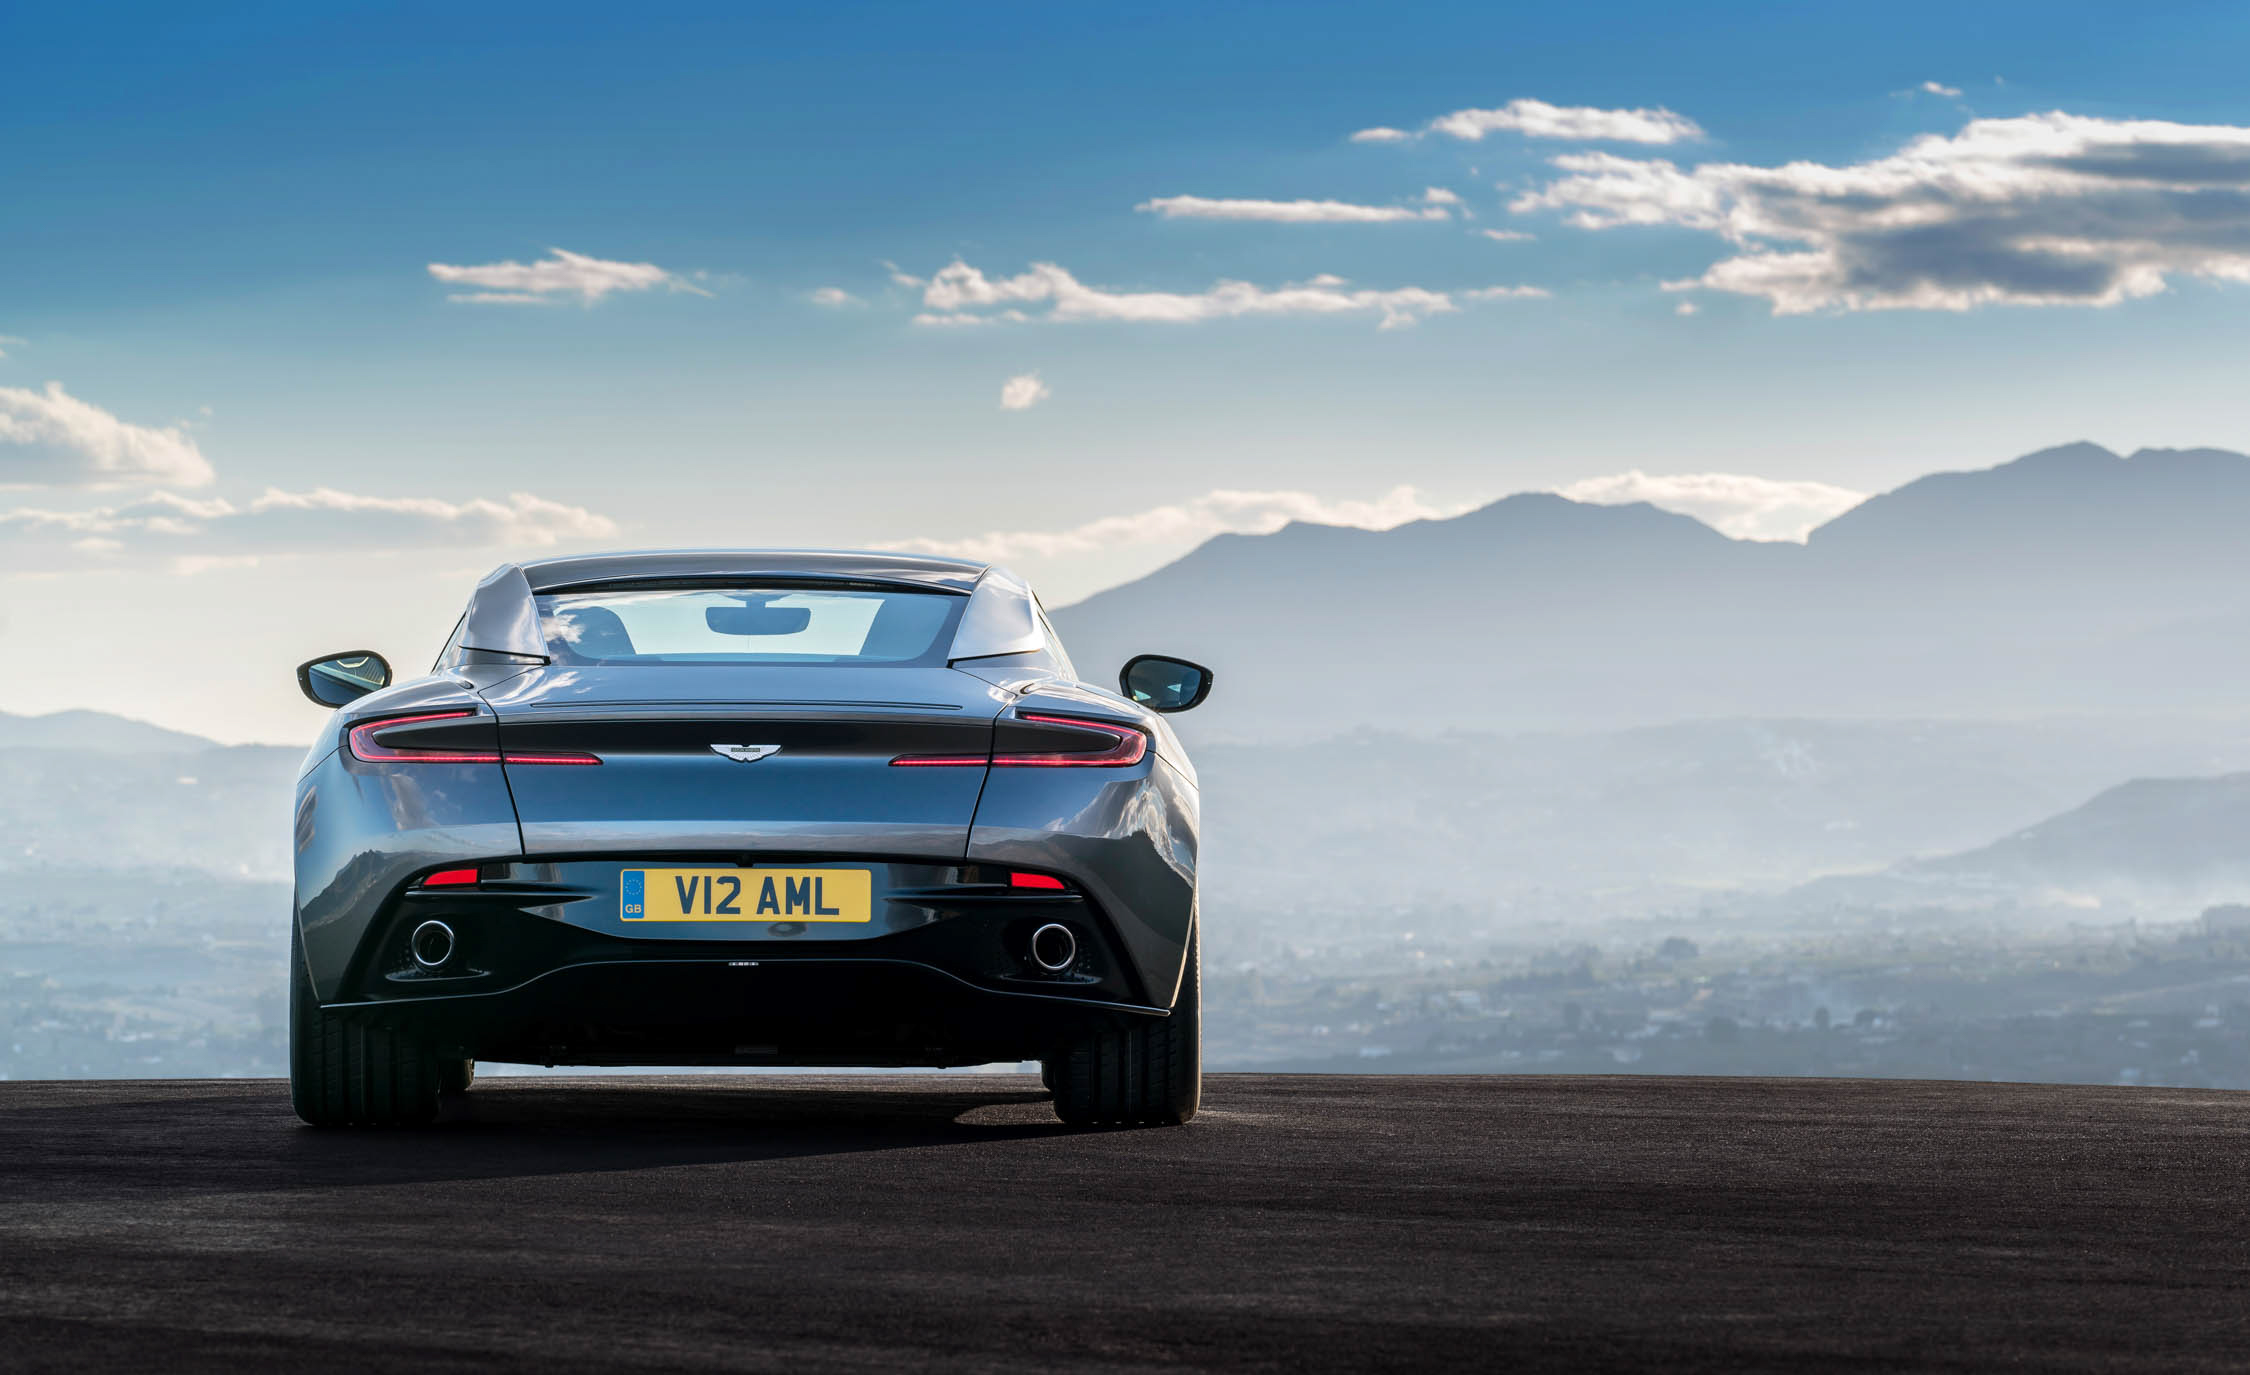 2017 Aston Martin Db11 Exterior Rear View (Photo 8 of 22)